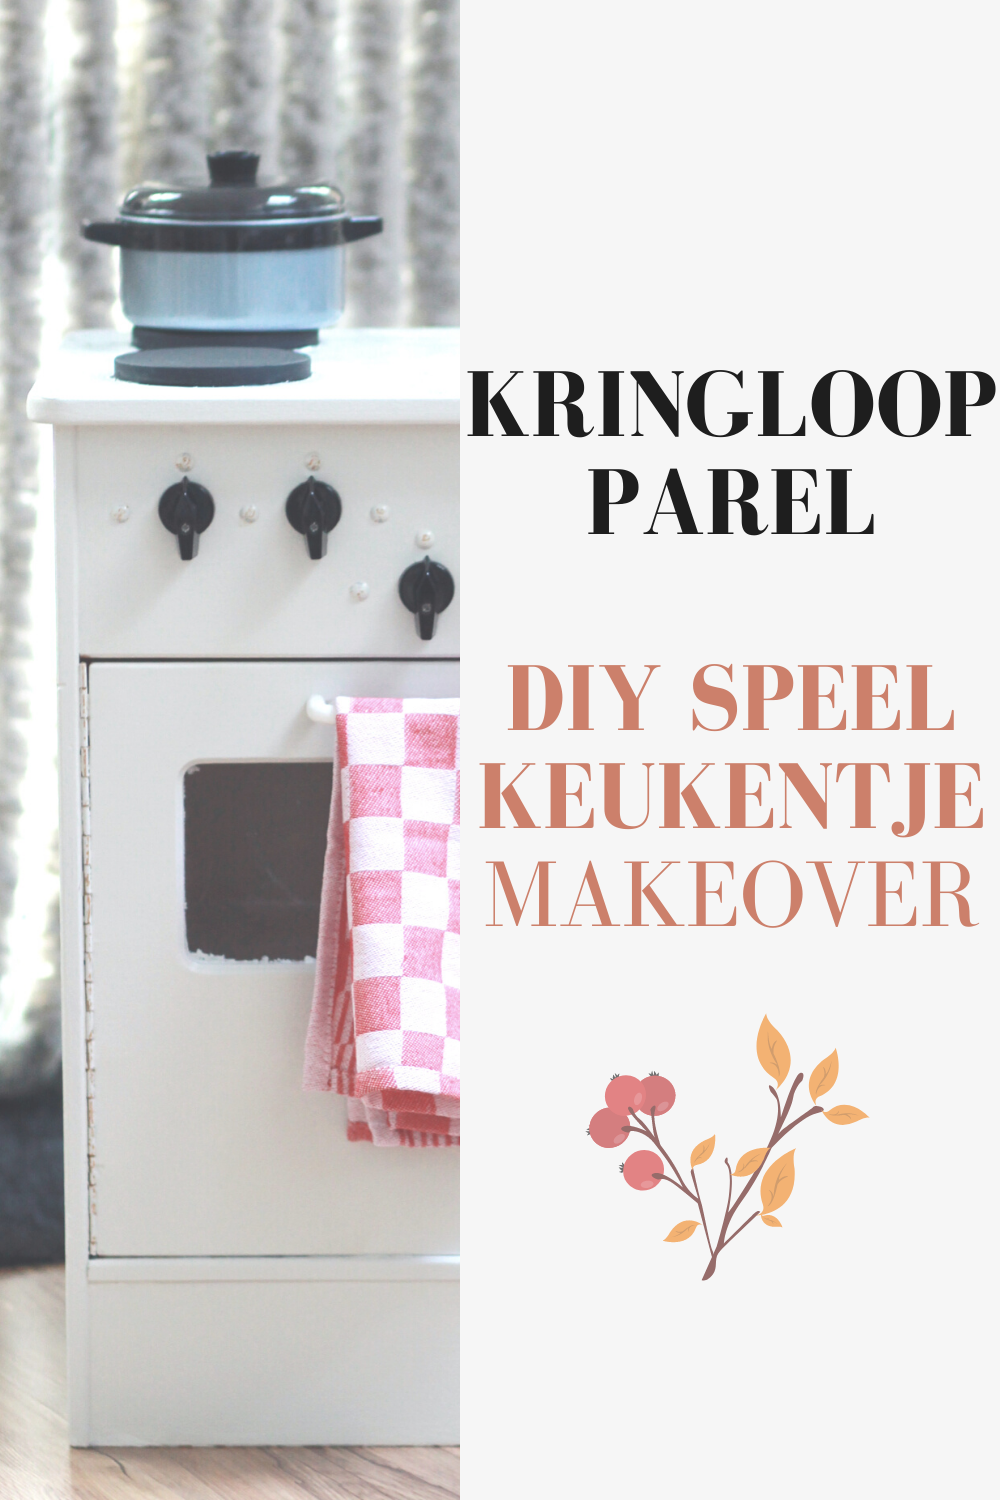 DIY Speelkeukentje Makeover